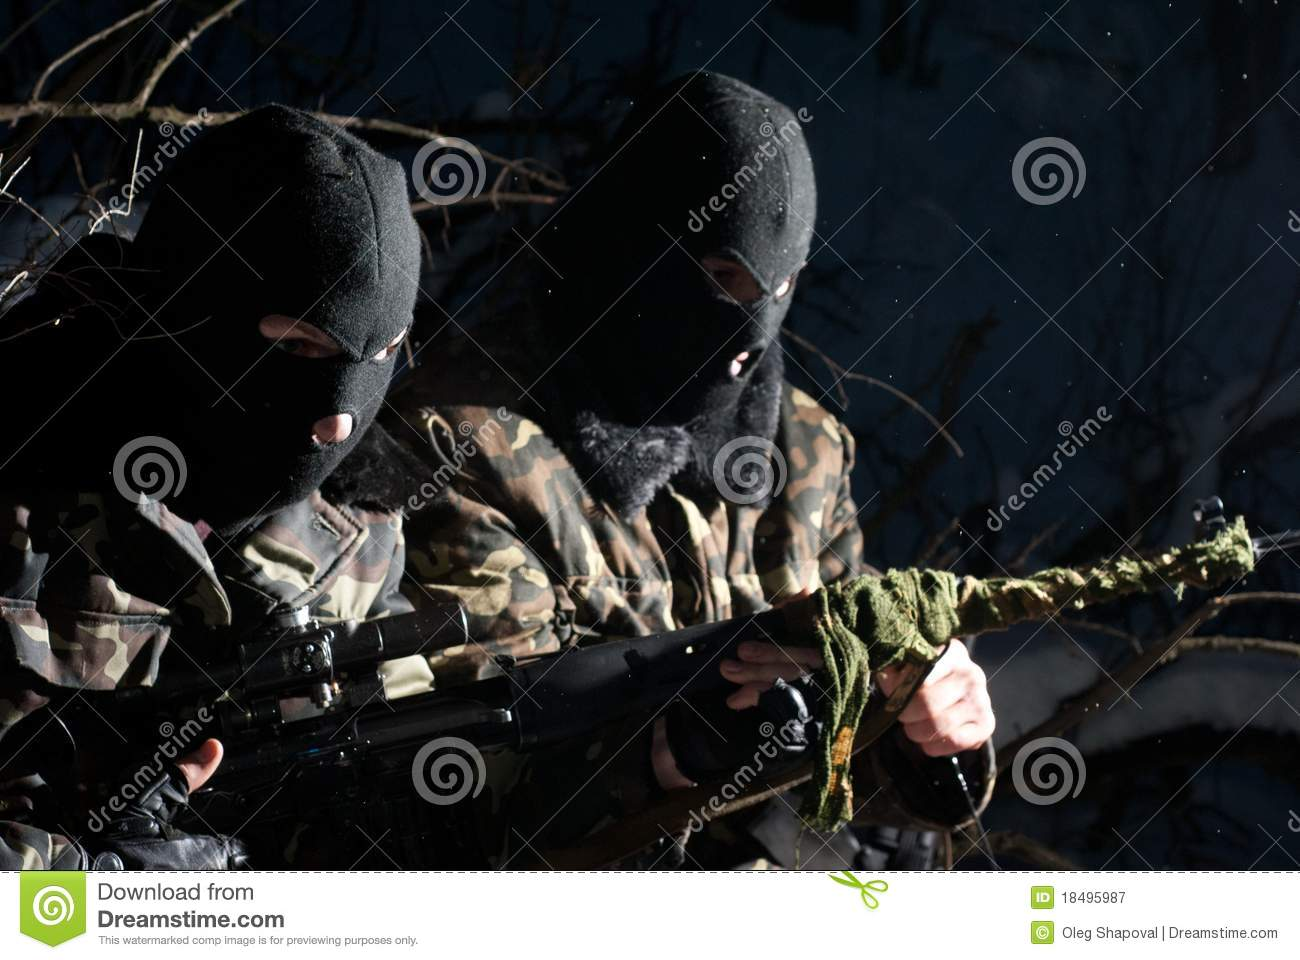 Two armed military men.